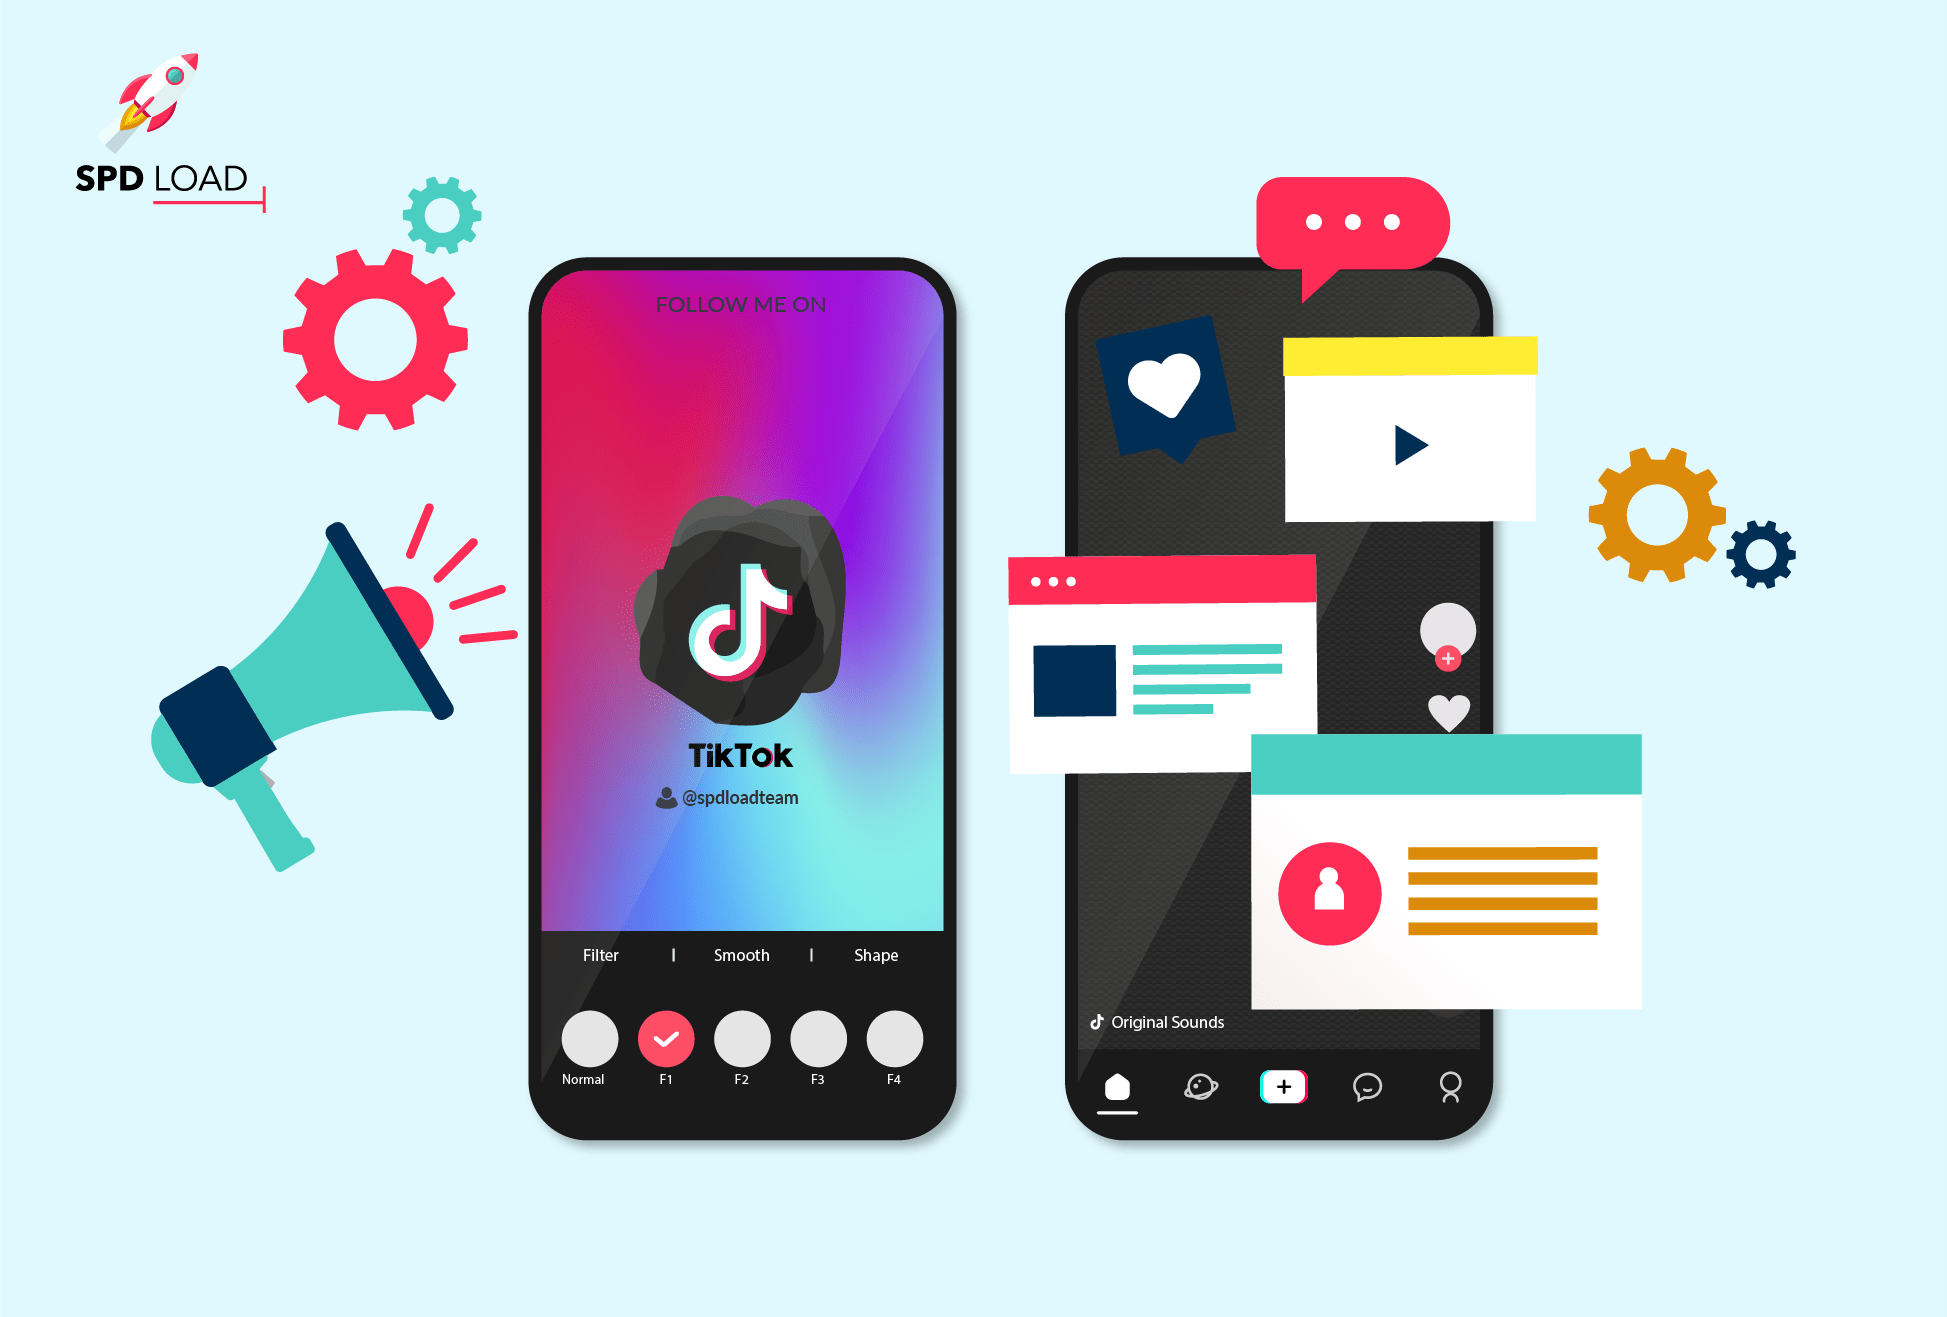 How to Make App Like Tik Tok [for Founders] | SpdLoad